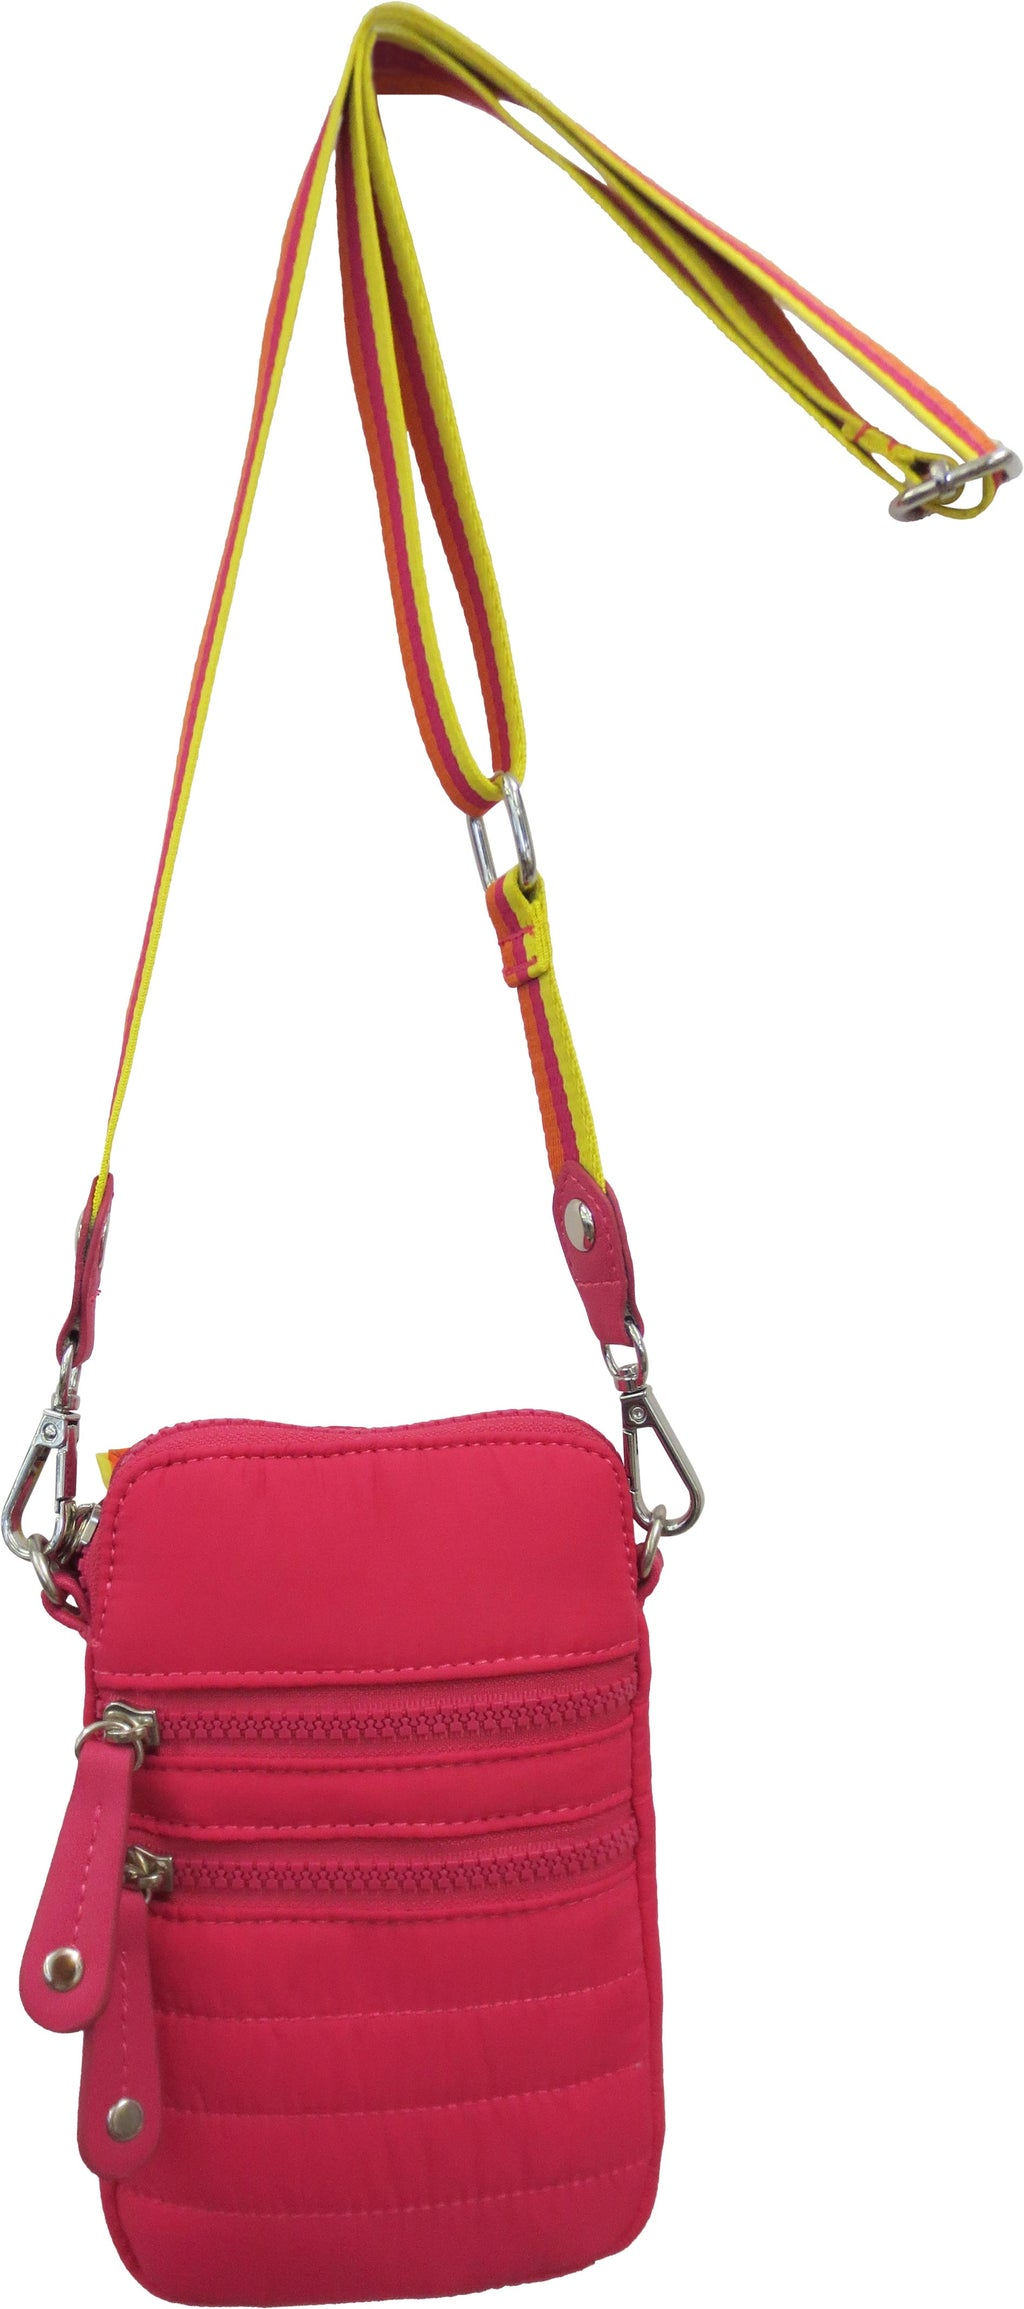 "SRB25178 - Nylon Cell Phone Crossbody in Pink by  Sondra  Roberts. A must have for the perfect hands-free crossbody to carry phone, keys, credit cards and small essentials. Quilted nylon shell and lining with dual exterior zipper pockets and one exterior rear slot pocket. Top zip closure with four interior credit card slot pockets. Dimensions: 7"" H x 5"" W x 1"" D. Imported"